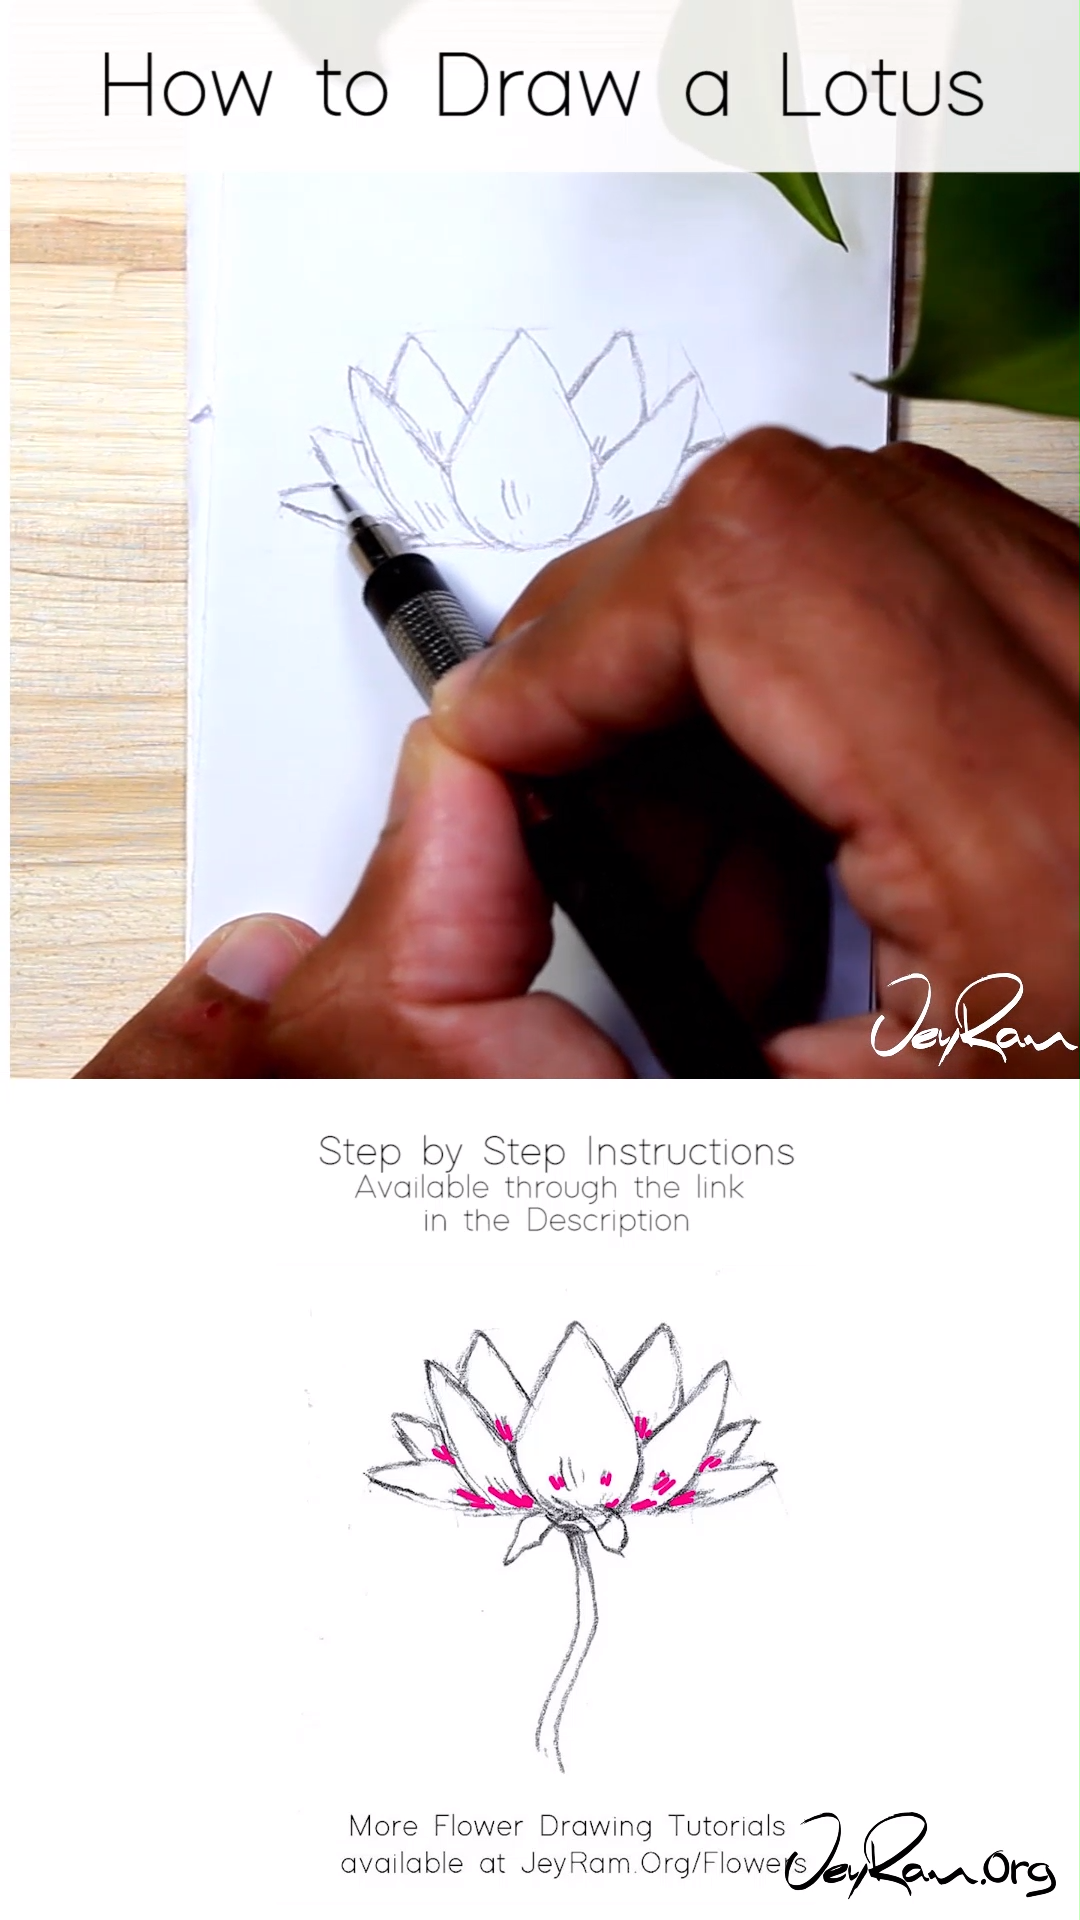 How to Draw a Lotus Flower Step by Step for Beginners